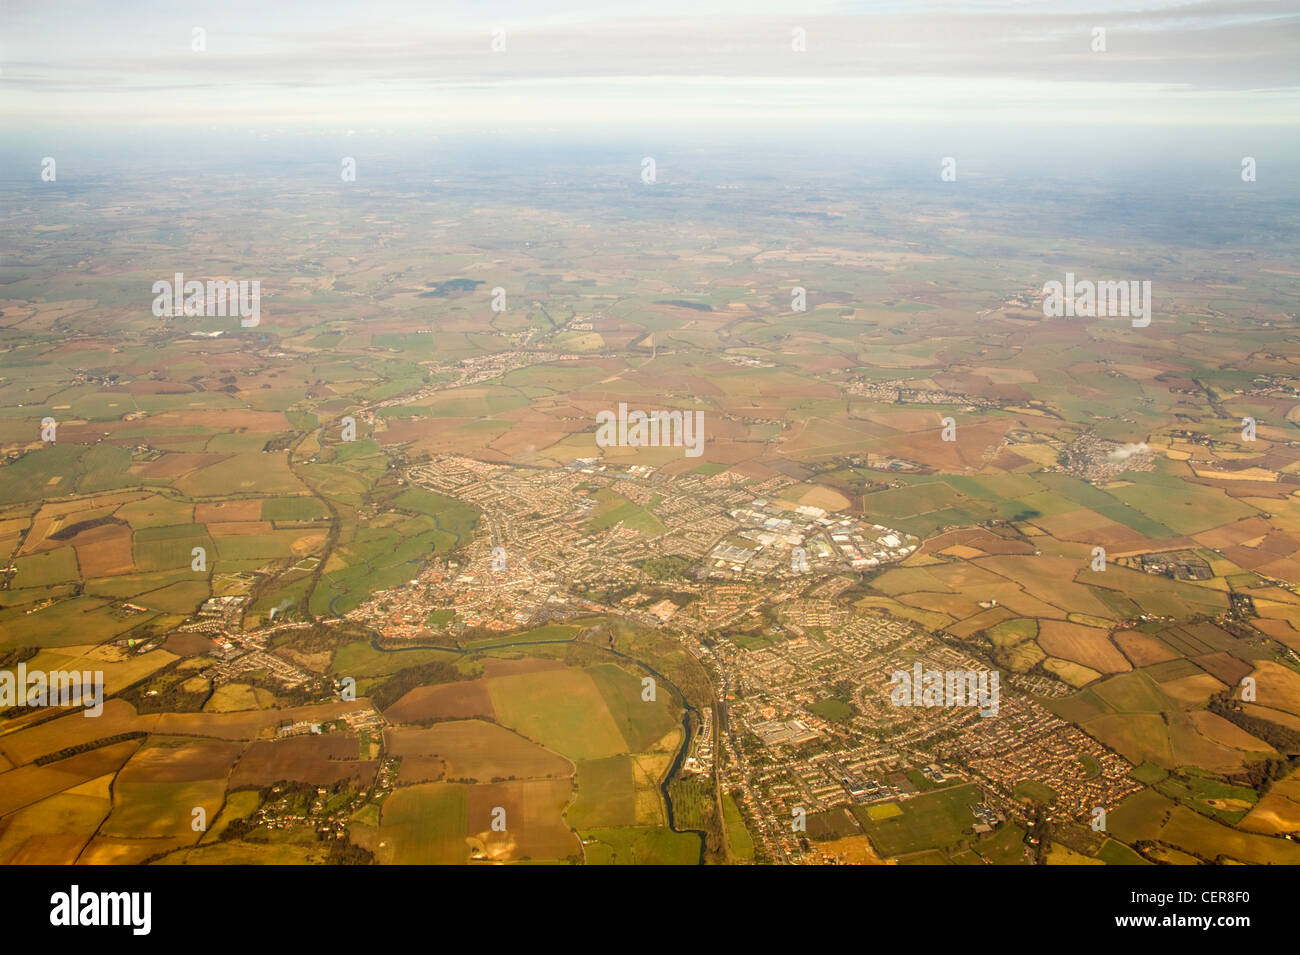 High altitude view from a plane over Essex from a plane. - Stock Image